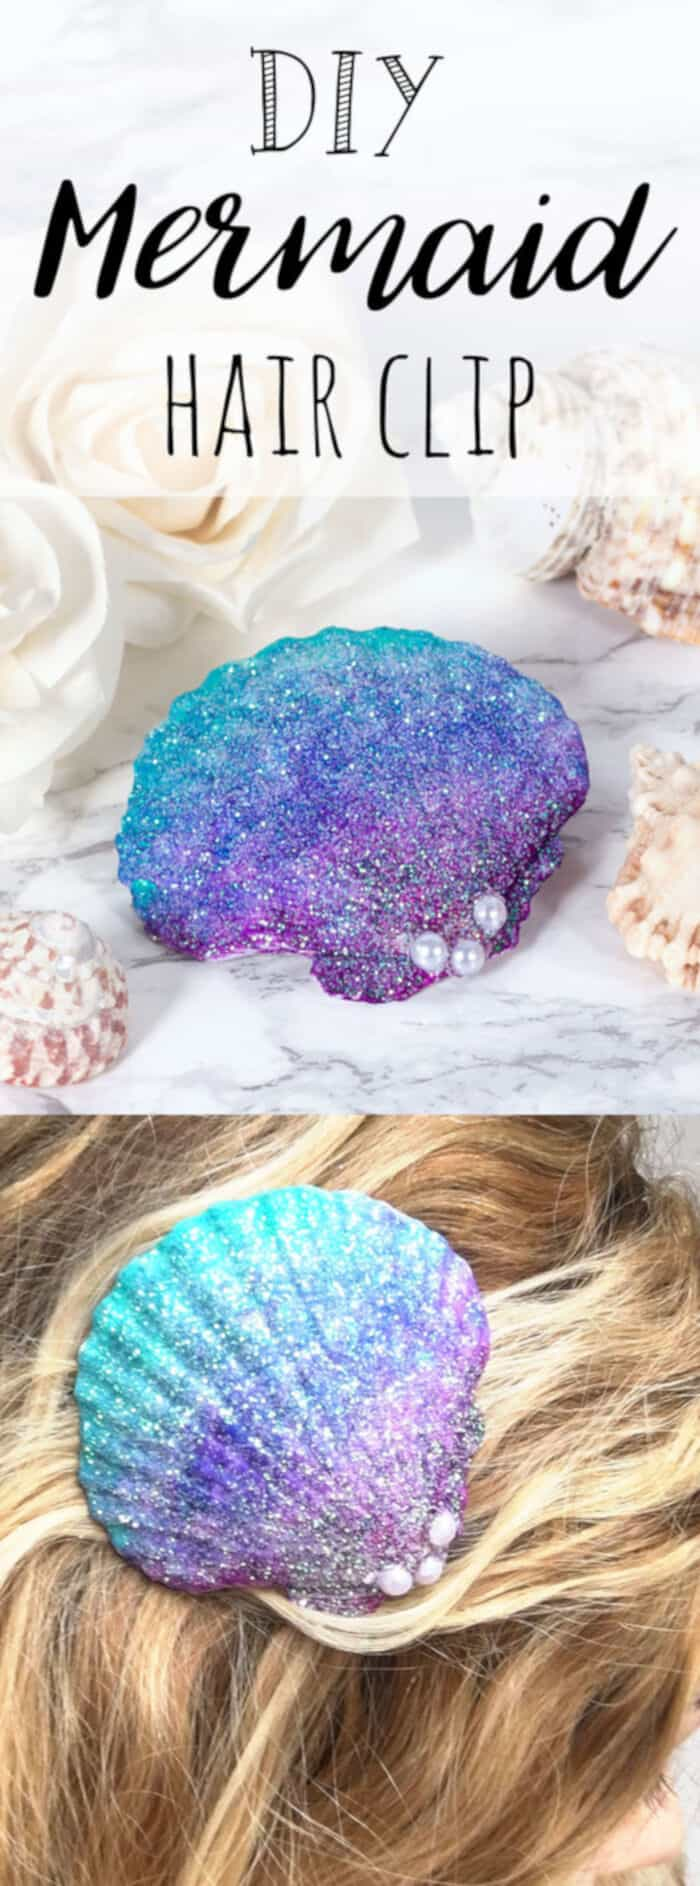 DIY-Mermaid-Shell-Hair-Clip-Craft-by-Doodle-and-Stitch